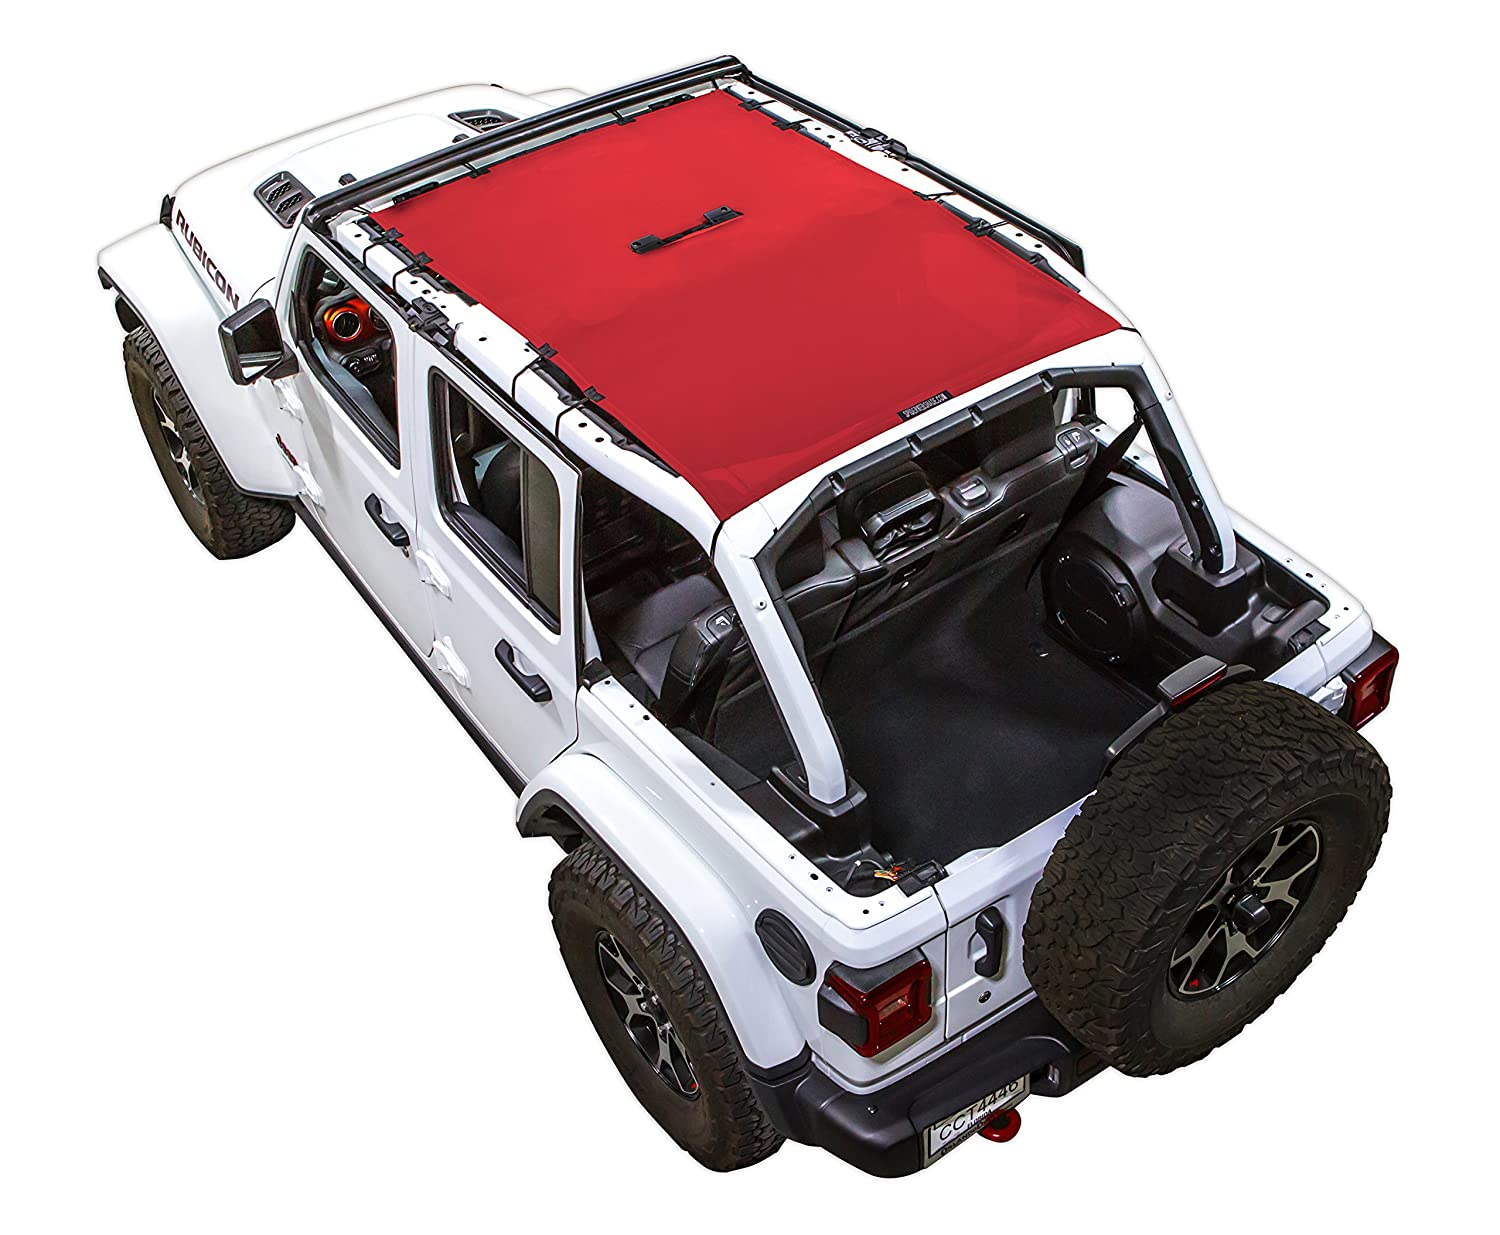 Spiderwebshade Jeep Wrangler Jl Mesh Shade Top Sunshade Install Freedom Uv Protection Accessory Usa Made With 5 Year Warranty For Your 4 Door 2018 In